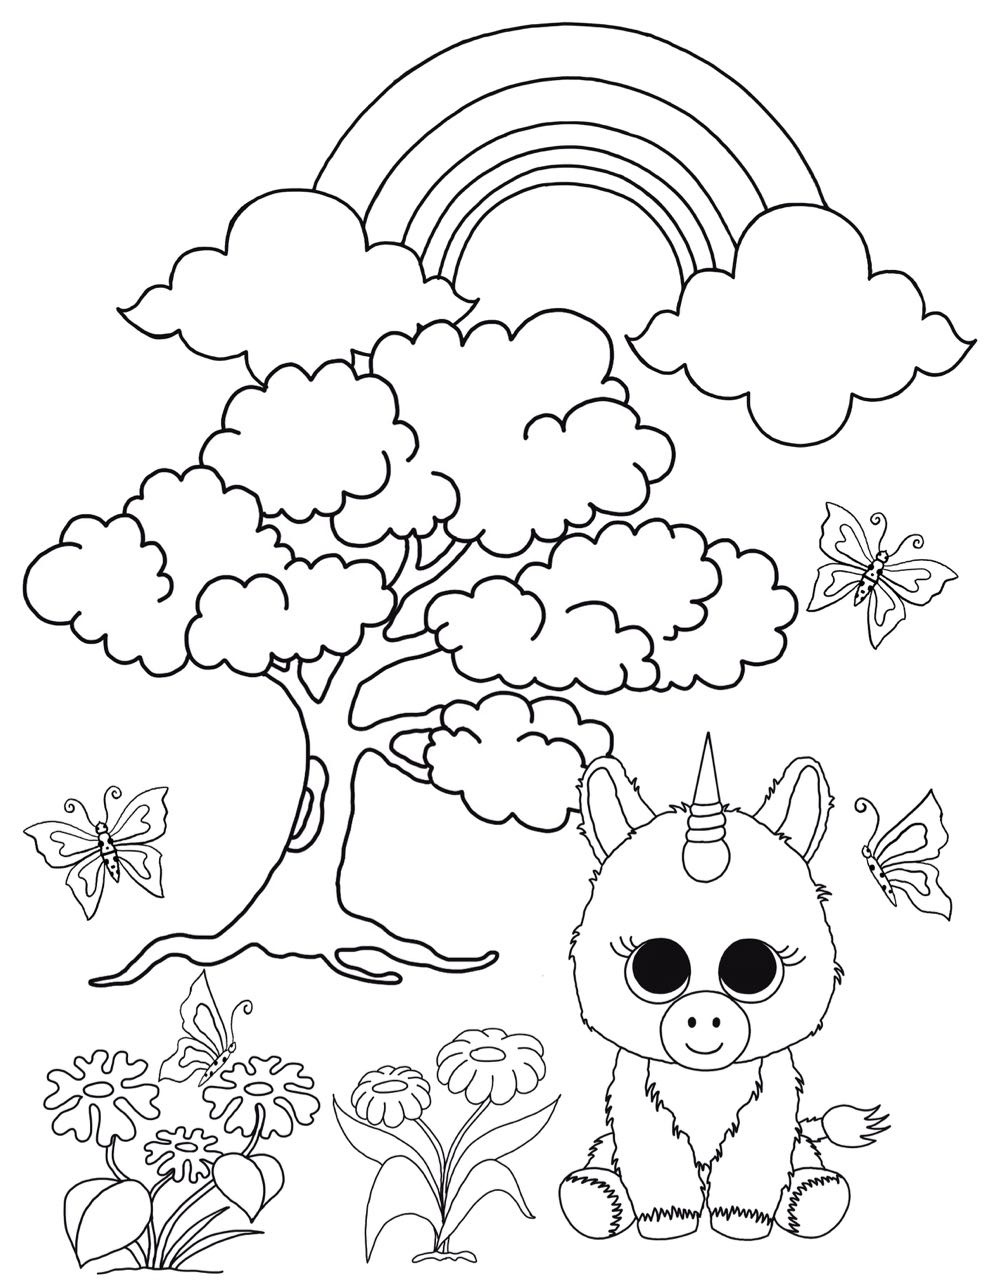 Free Beanie Boo Coloring Pages Download & Print: Cats, Dogs And Unicorns - Free Printable Beanie Boo Coloring Pages